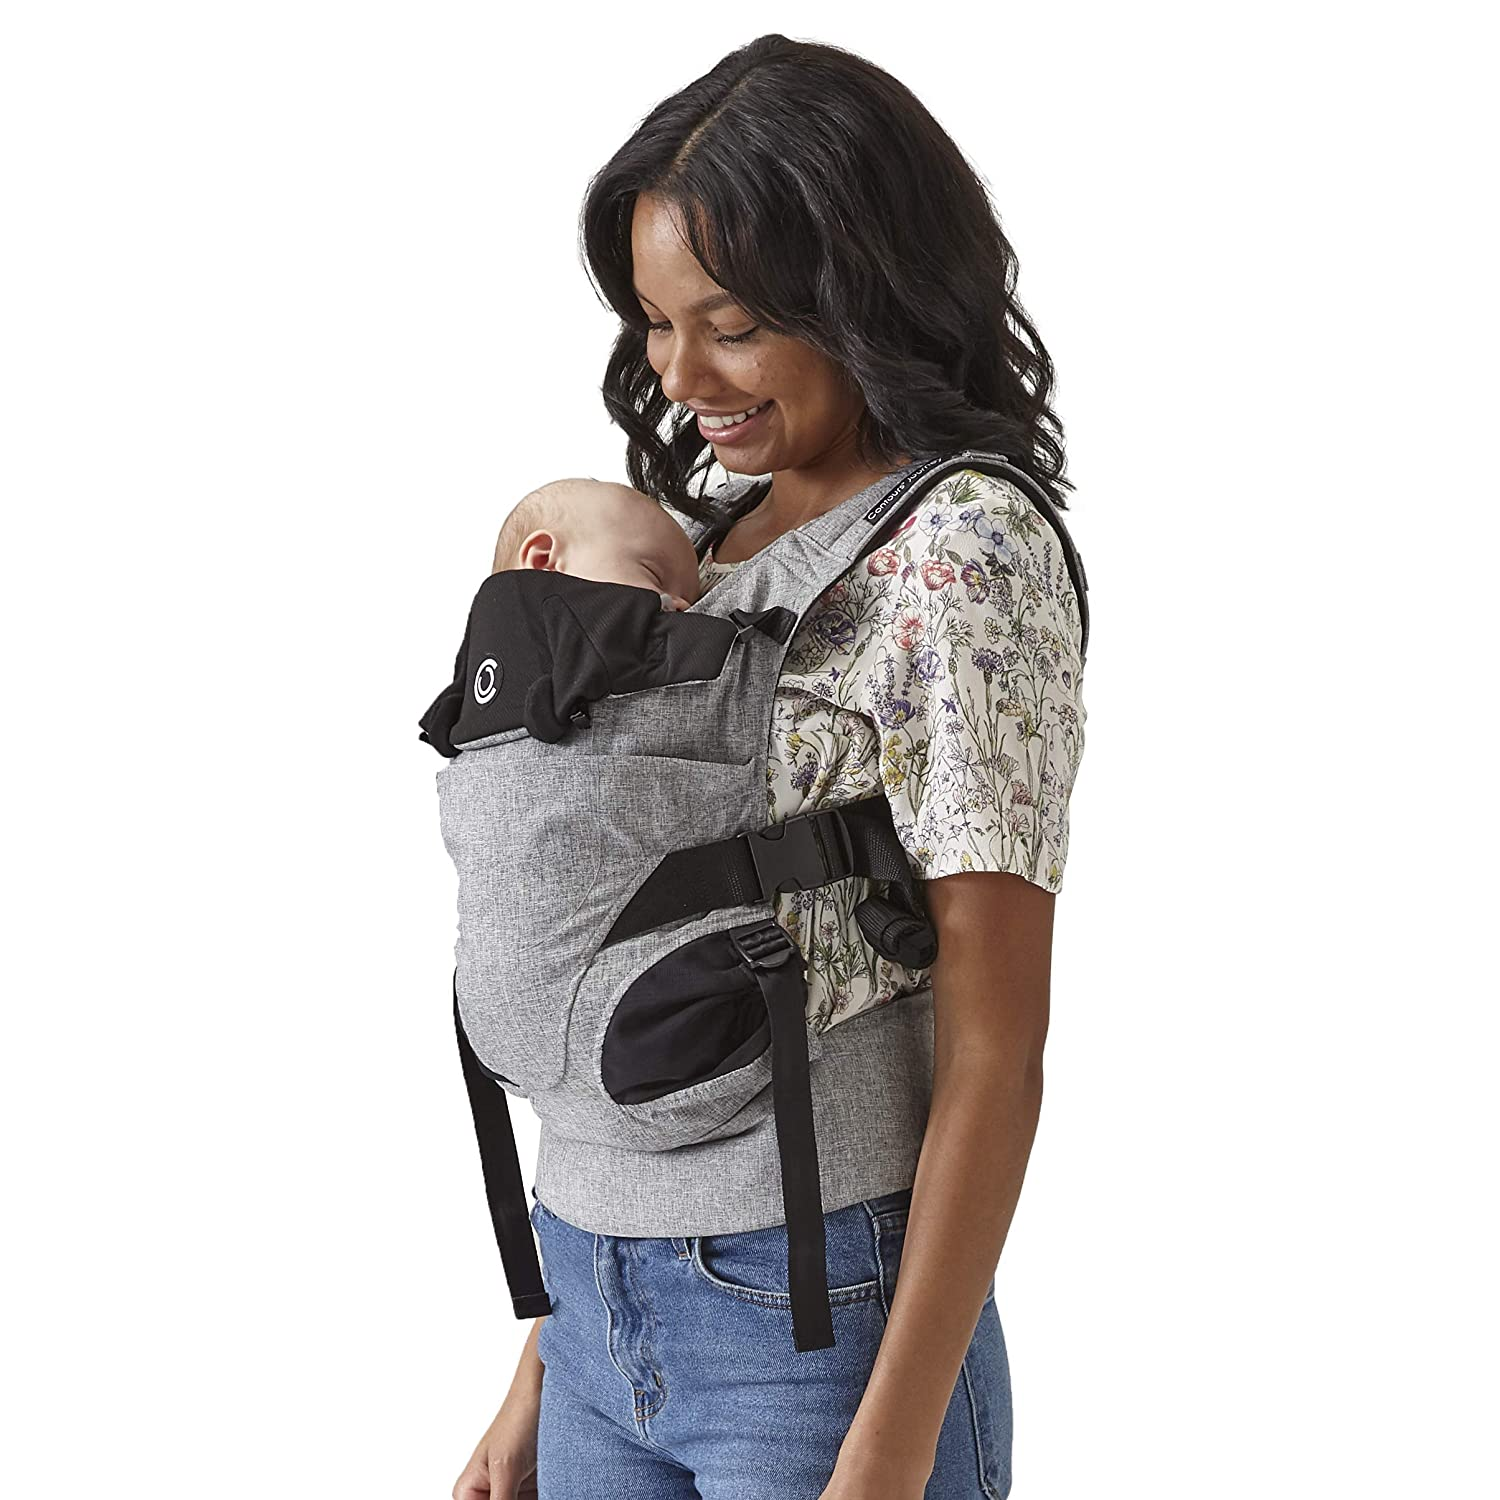 Contours Journey 5-in-1 Baby Carrier, 5 Carrying Positions, No Infant Insert Required, Hip-Healthy, 3 Storage Pockets, Adjustable UPF 25 Sunshade, Comfortable Cotton Jersey Mesh, Graphite Grey